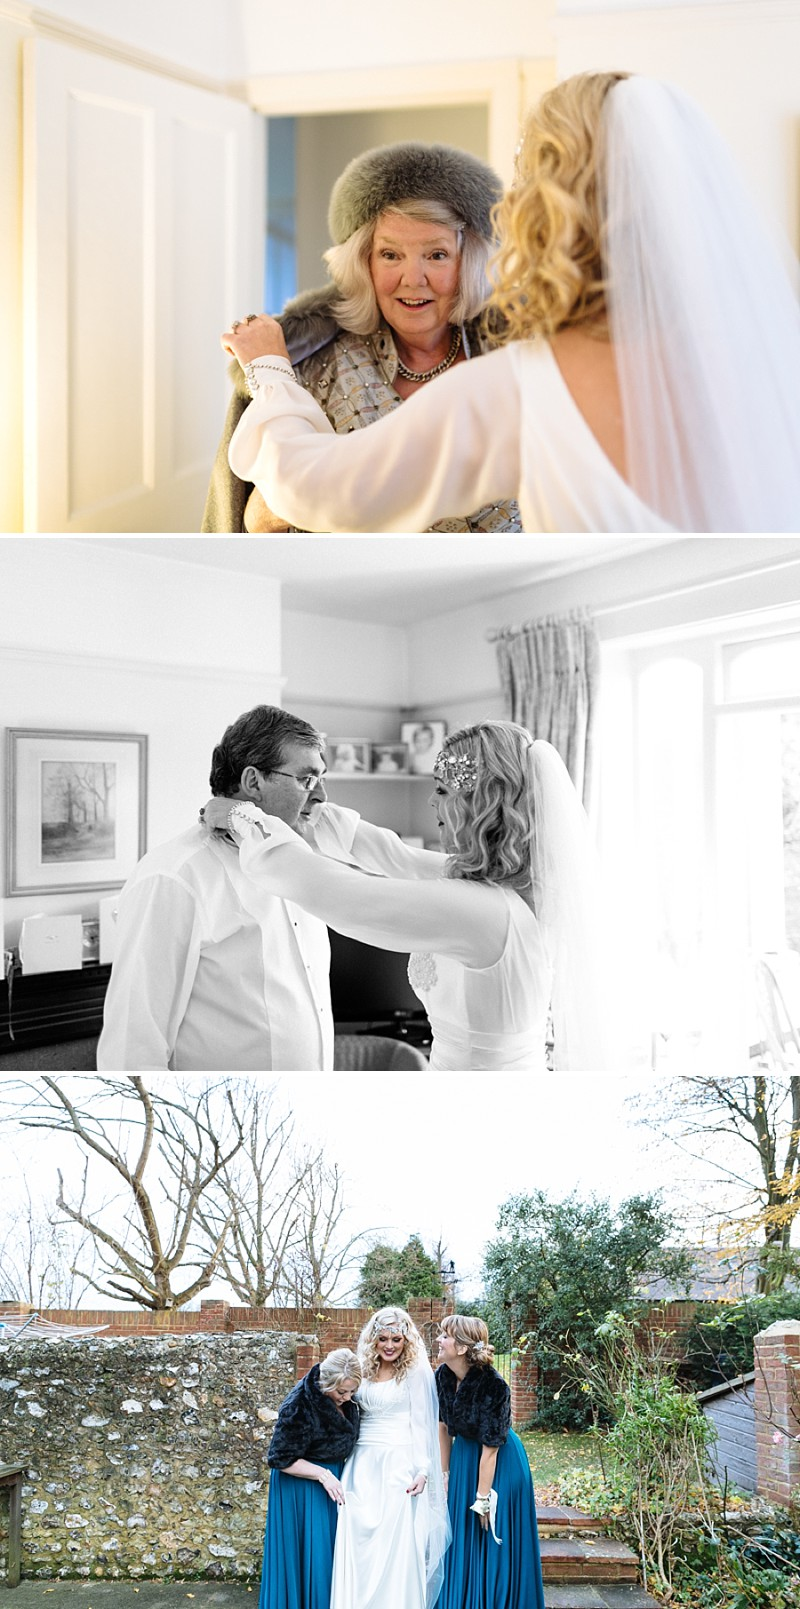 A A modern black tie winter wedding at Fetcham Park in Surrey with a bride in Emma Hunt and bridesmaids in Twobirds_0282